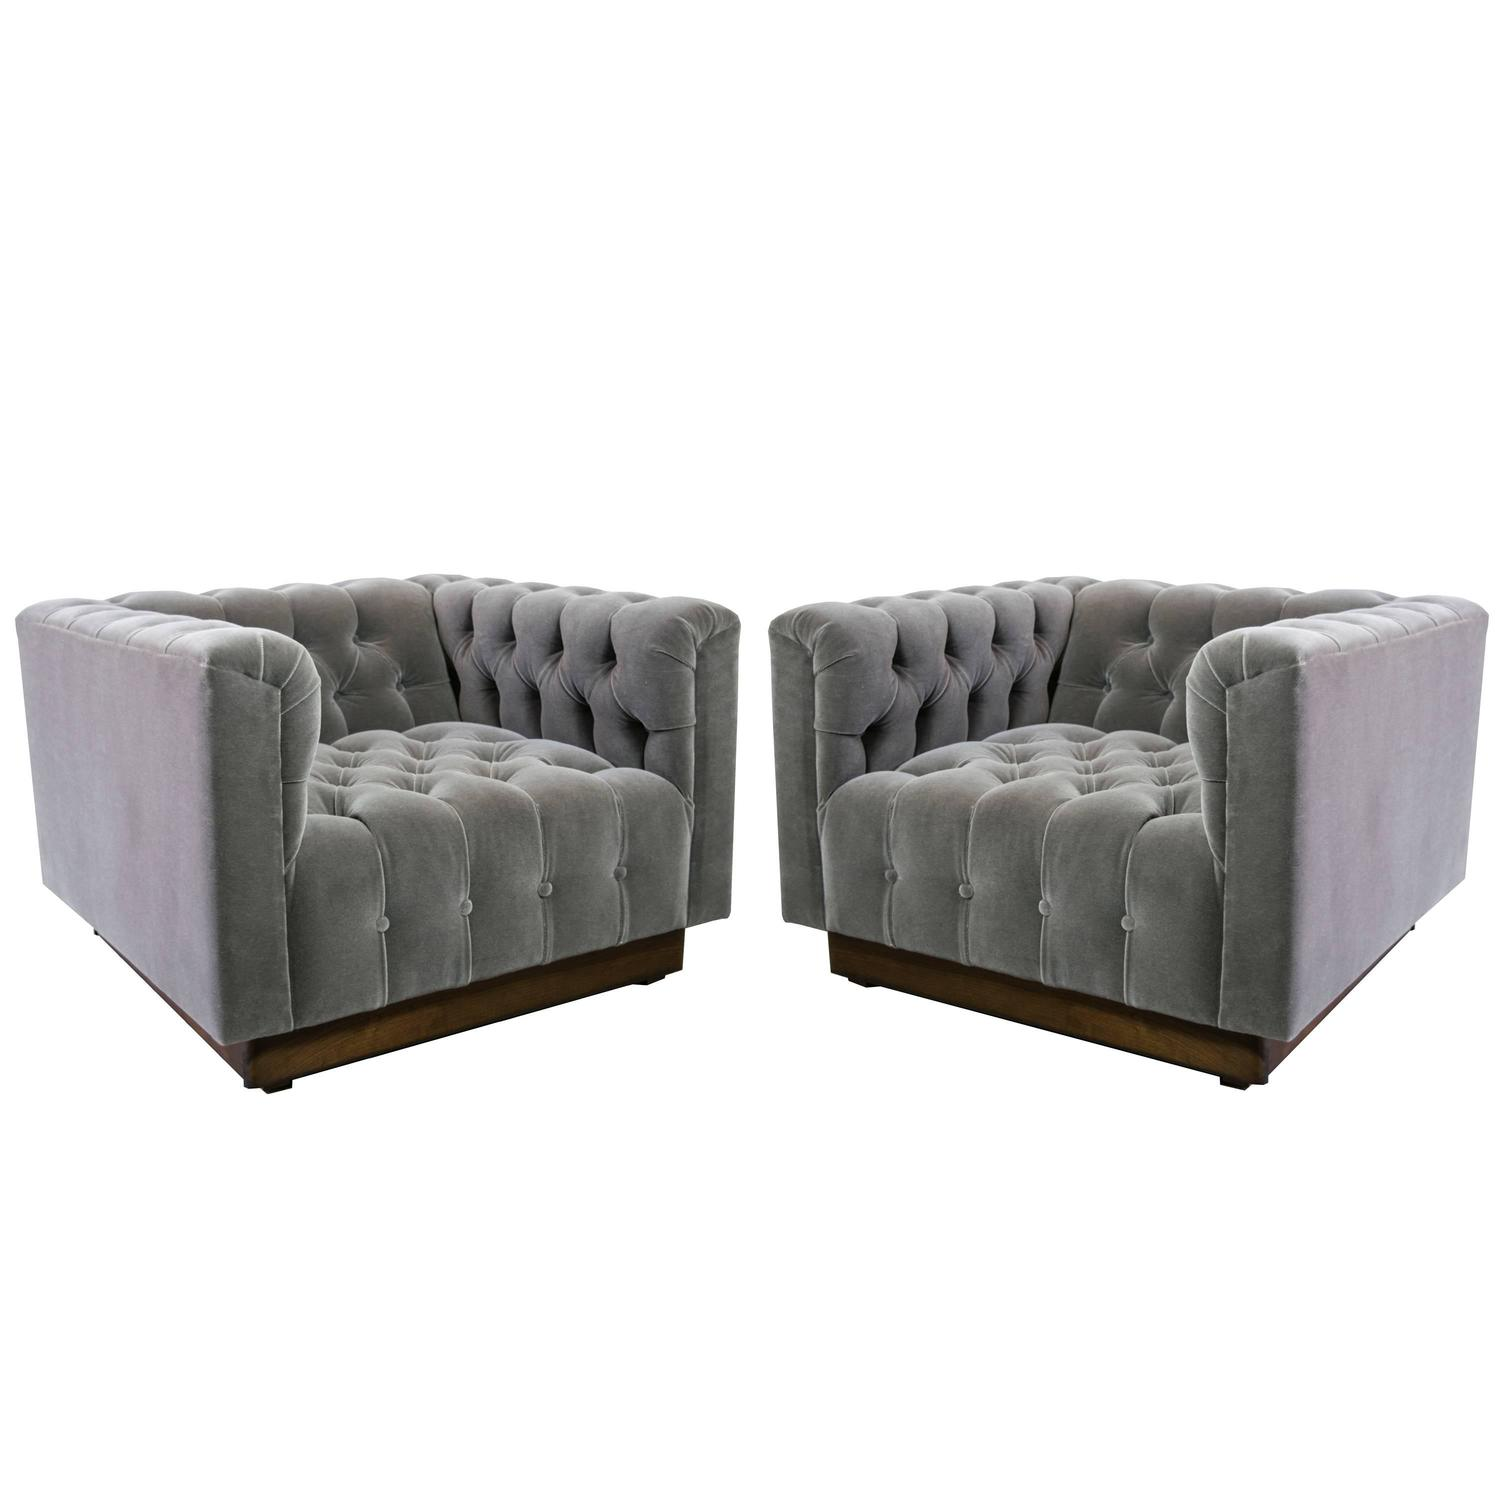 Grey Oversized Chair Oversized Milo Baughman Tufted Lounge Chairs In Smoky Gray